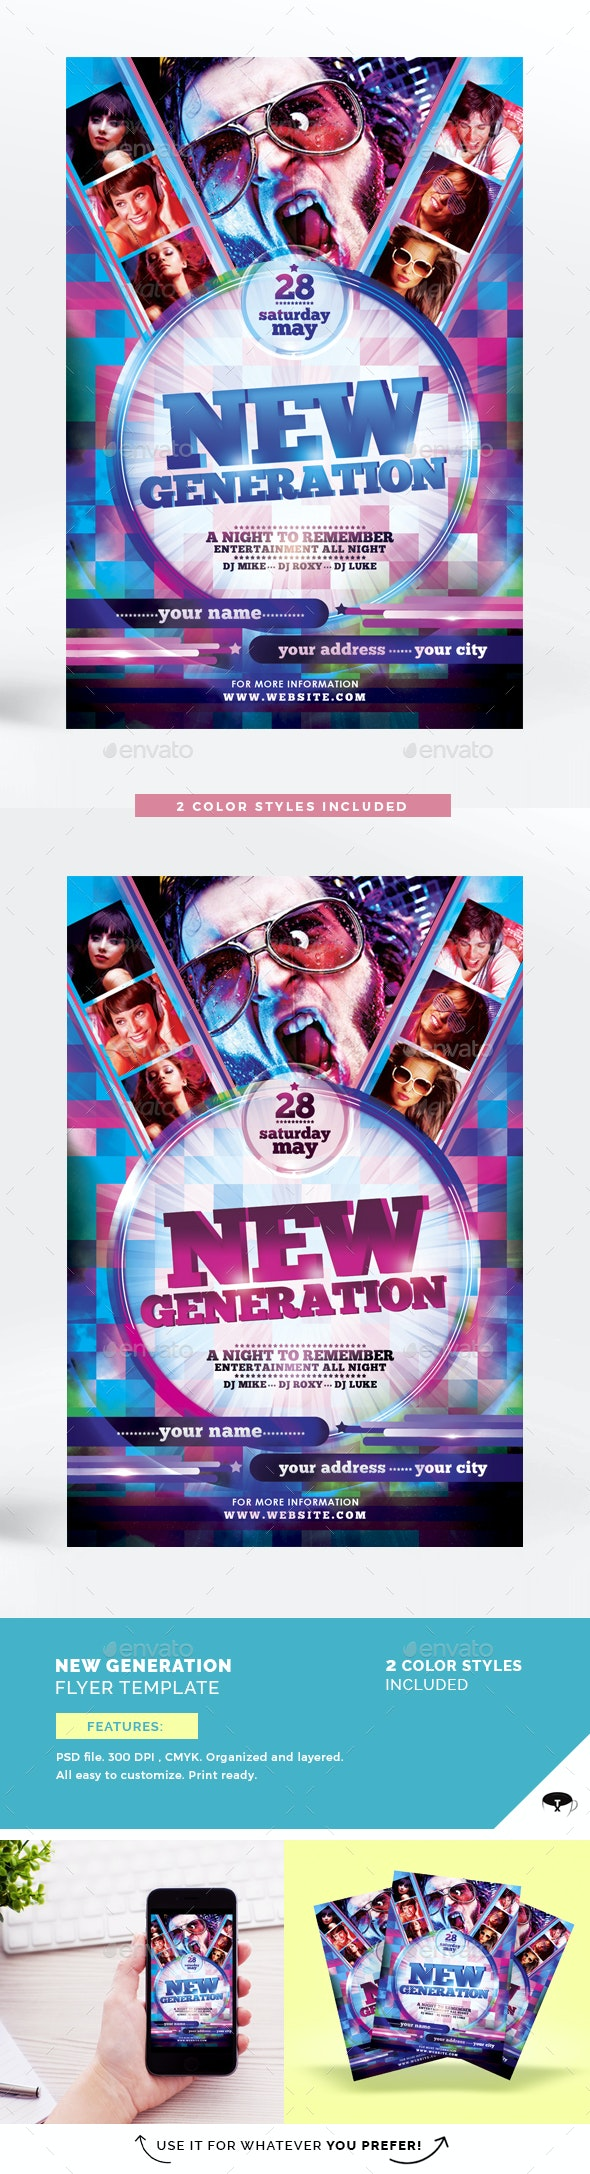 New Generation Flyer Template - Clubs & Parties Events